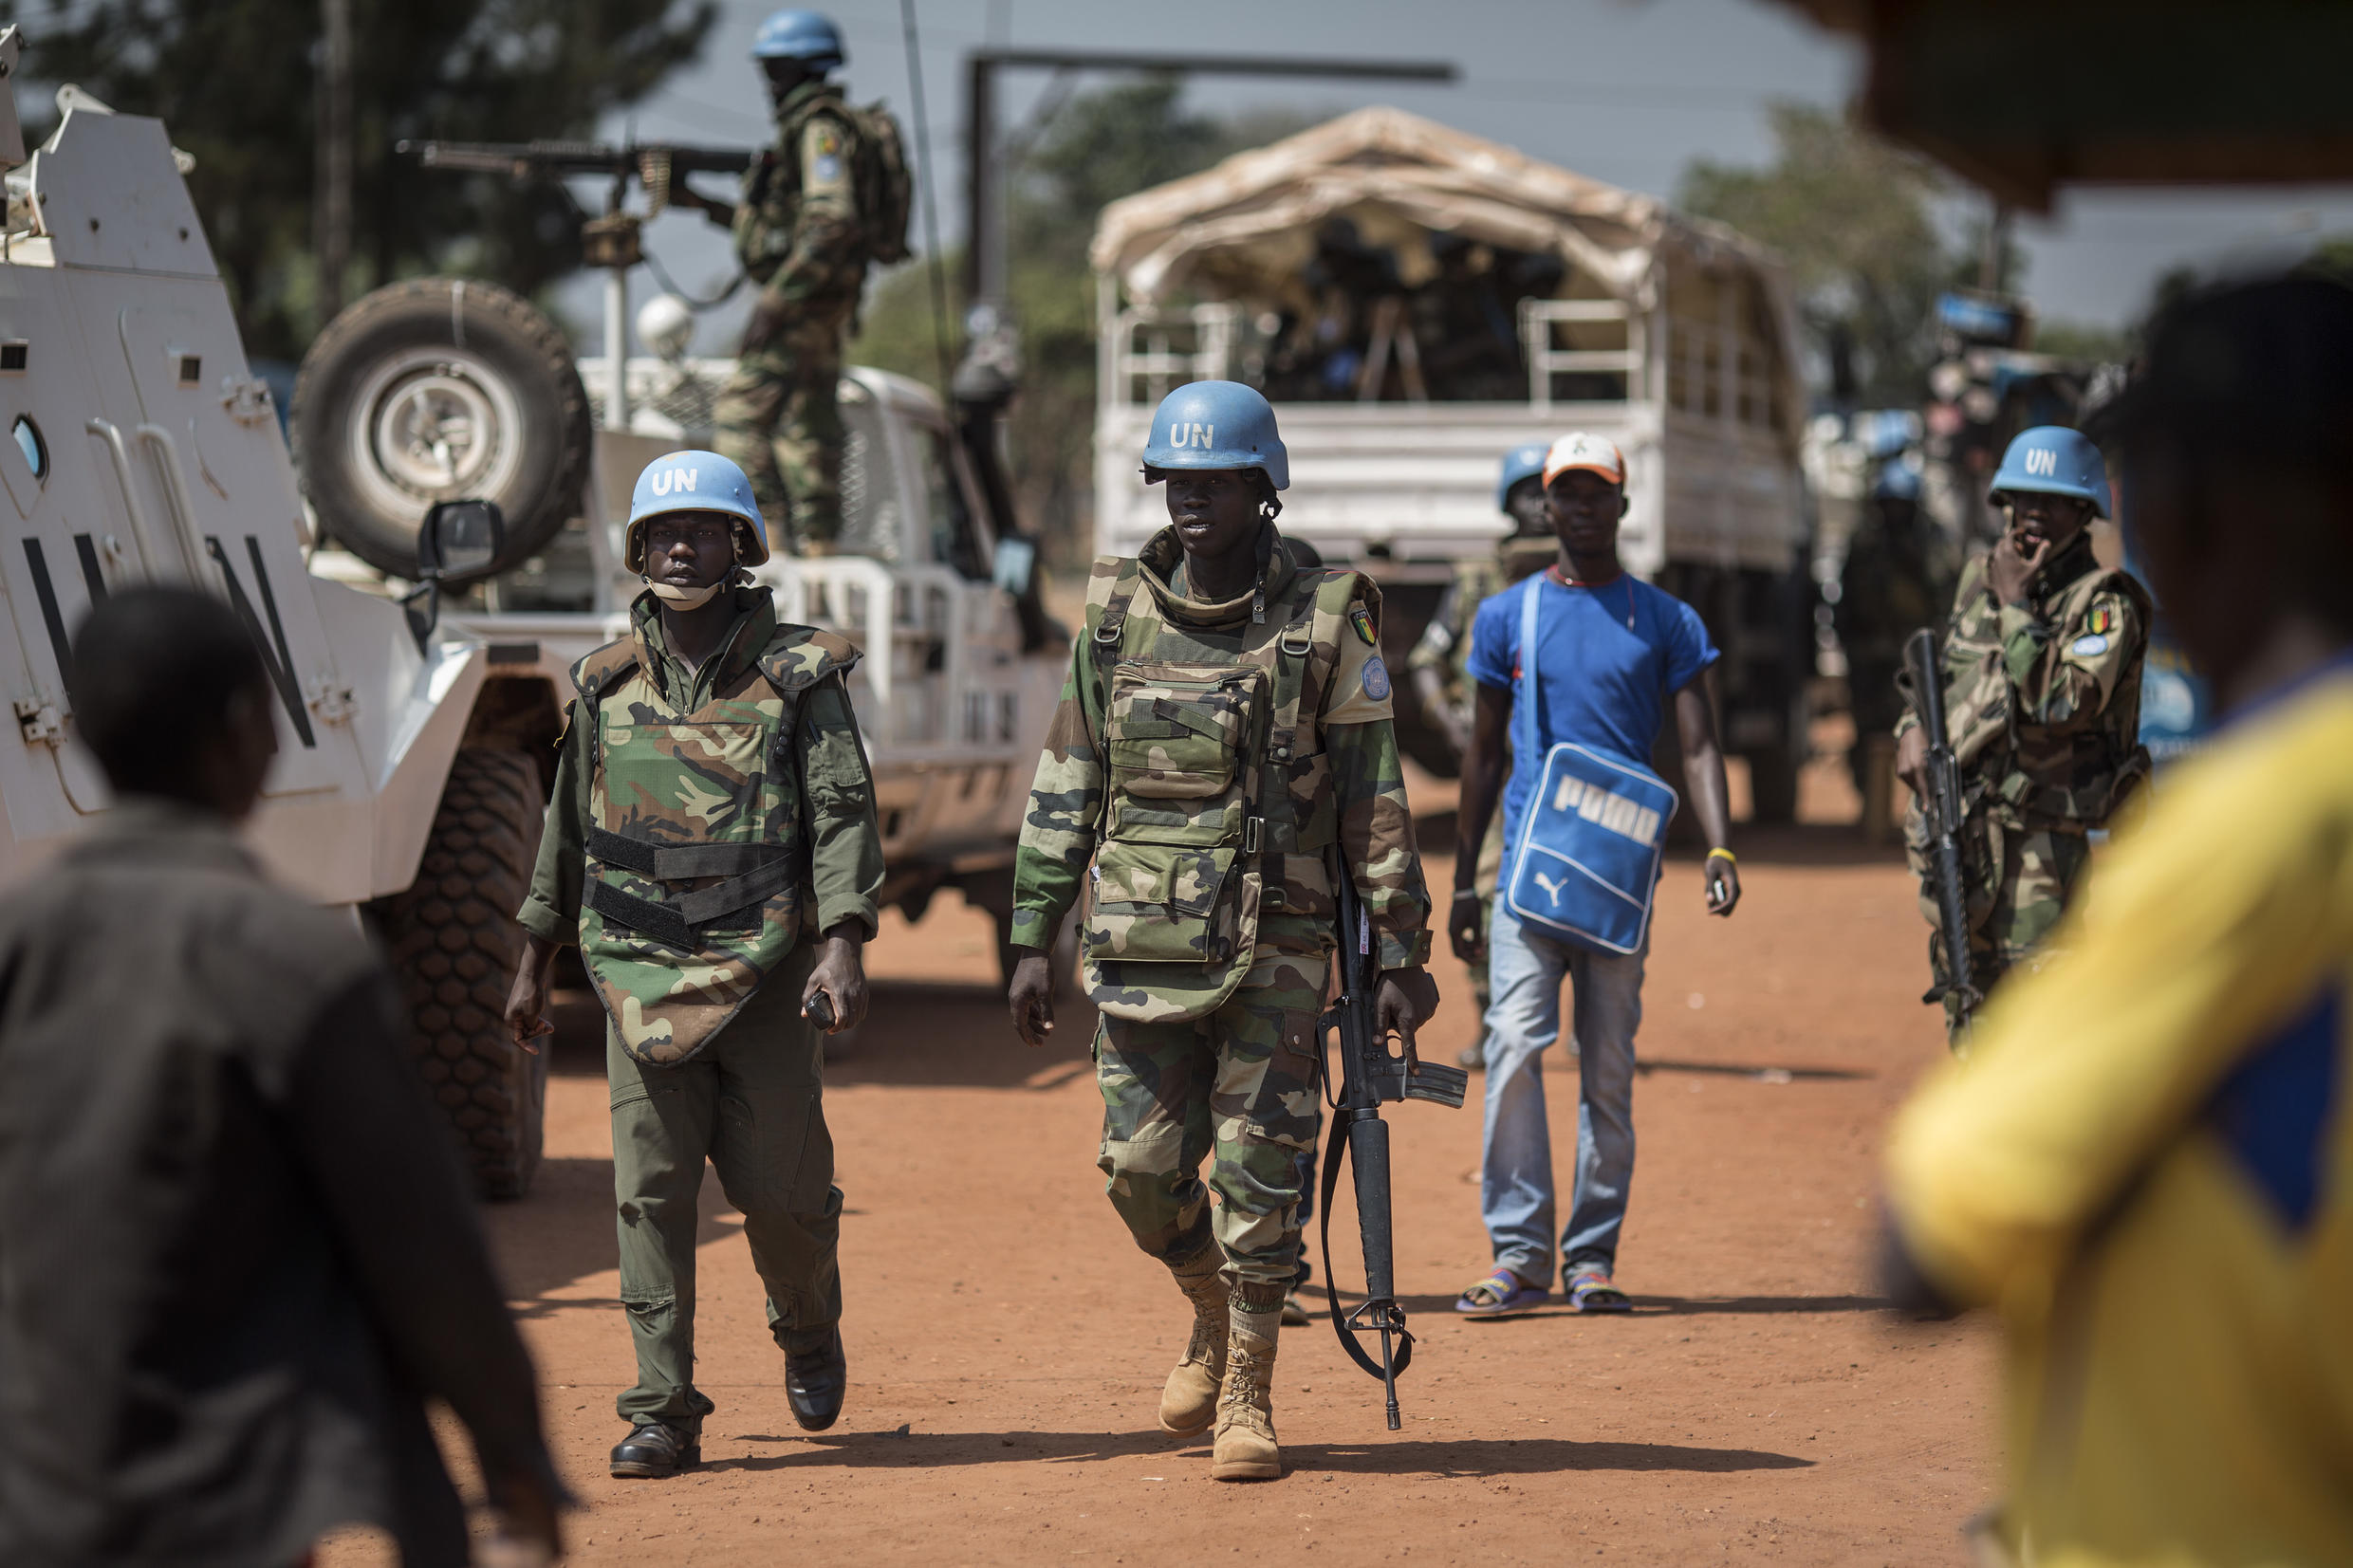 UN peacekeepers have been in the restive Central African Republic since 2014.